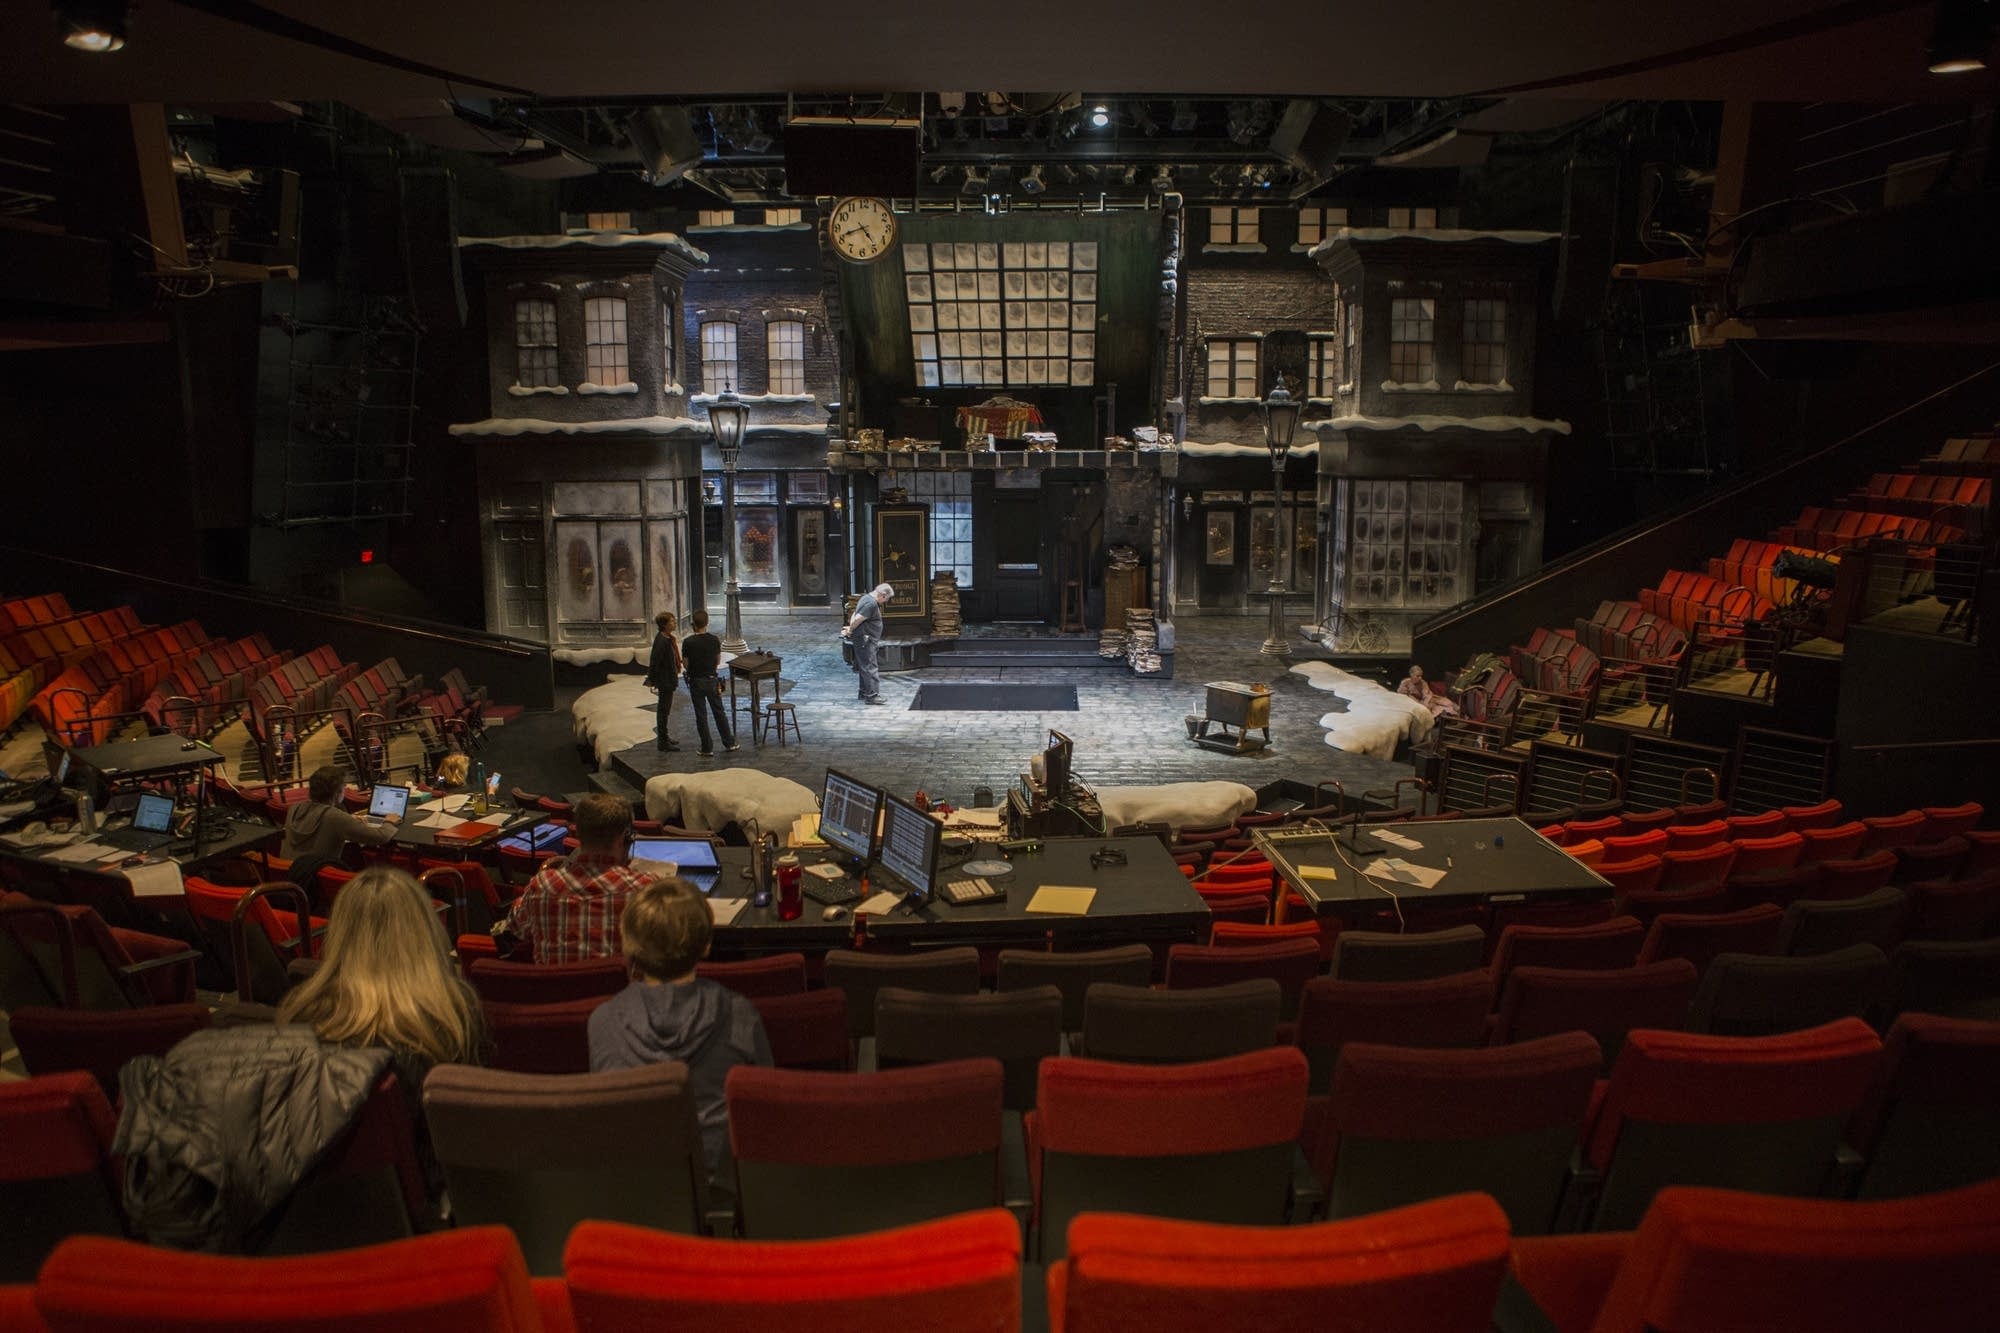 The 'A Christmas Carol' set is ready for show during a rehearsal.